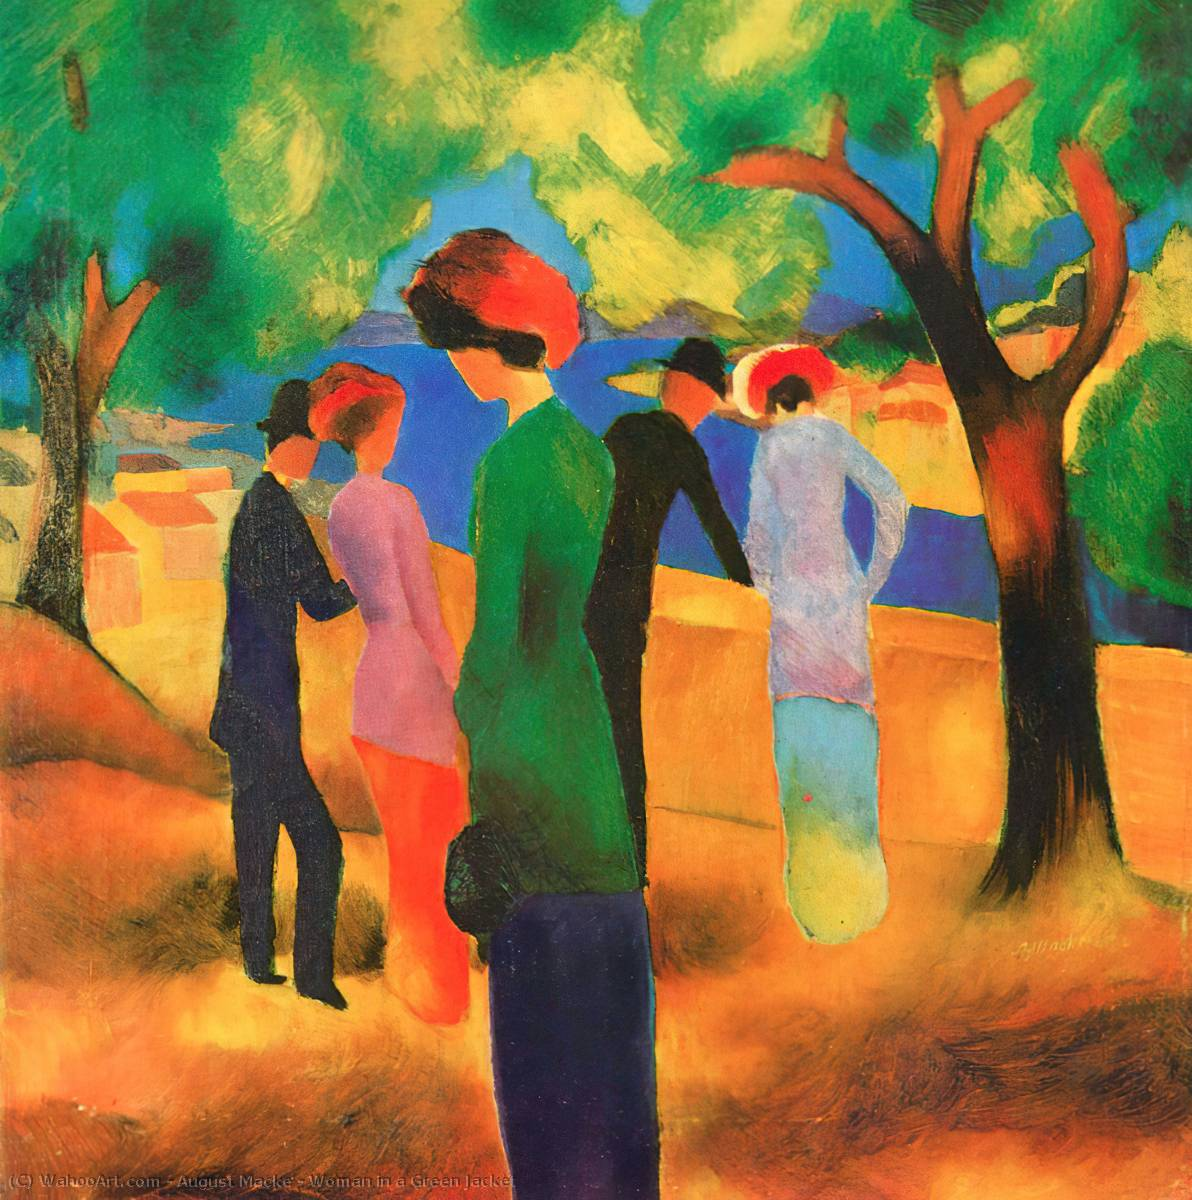 Woman in a Green Jacket, Oil On Canvas by August Macke (1887-1914, Germany)